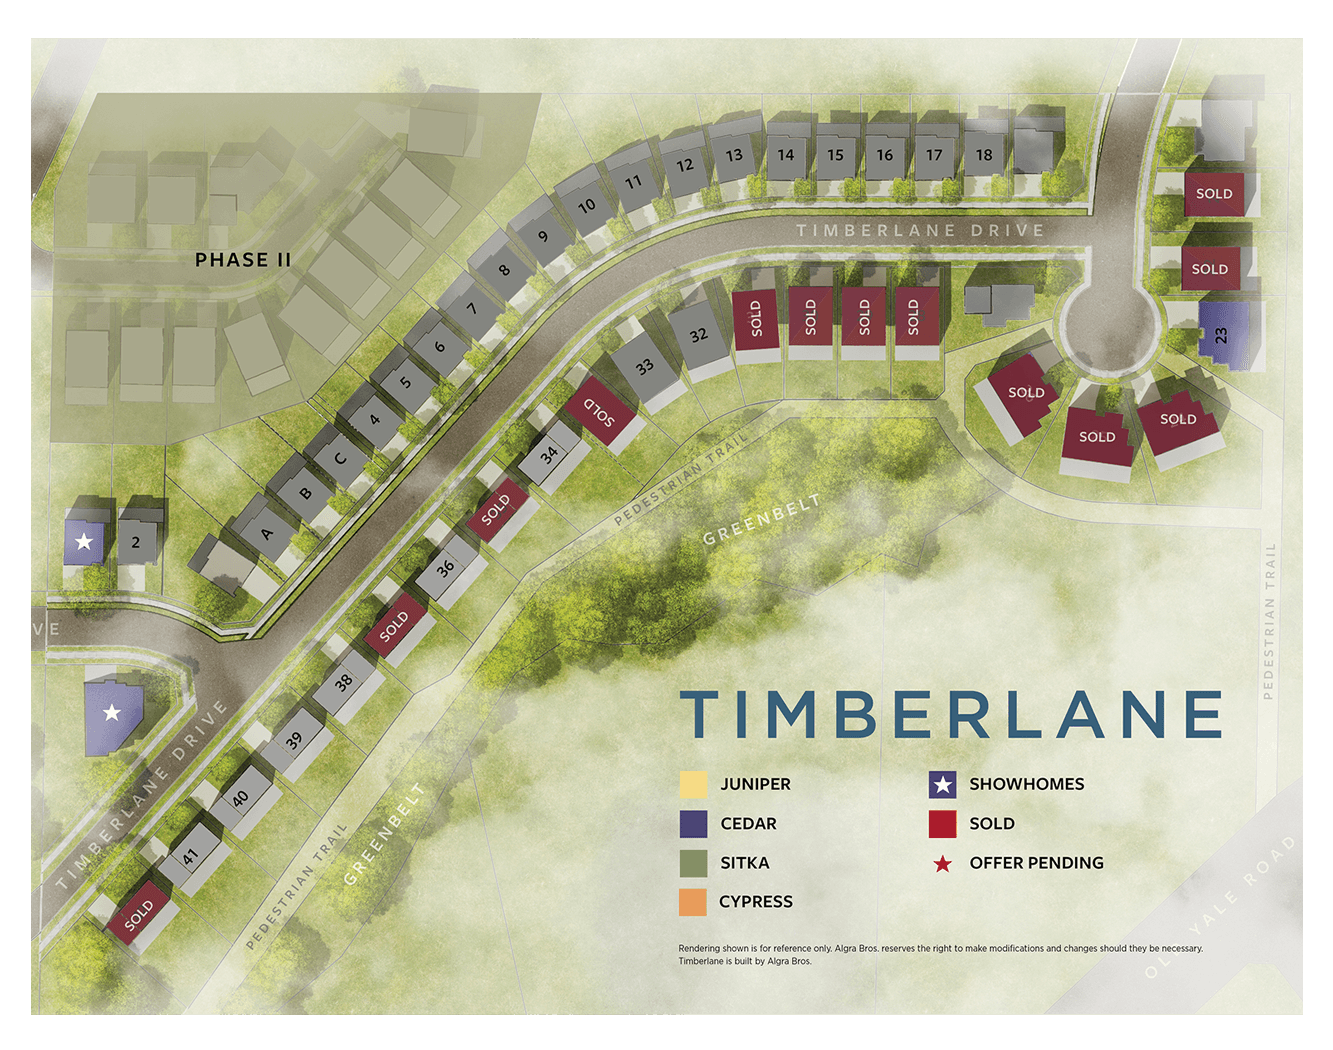 Site Plan for Cedar Models